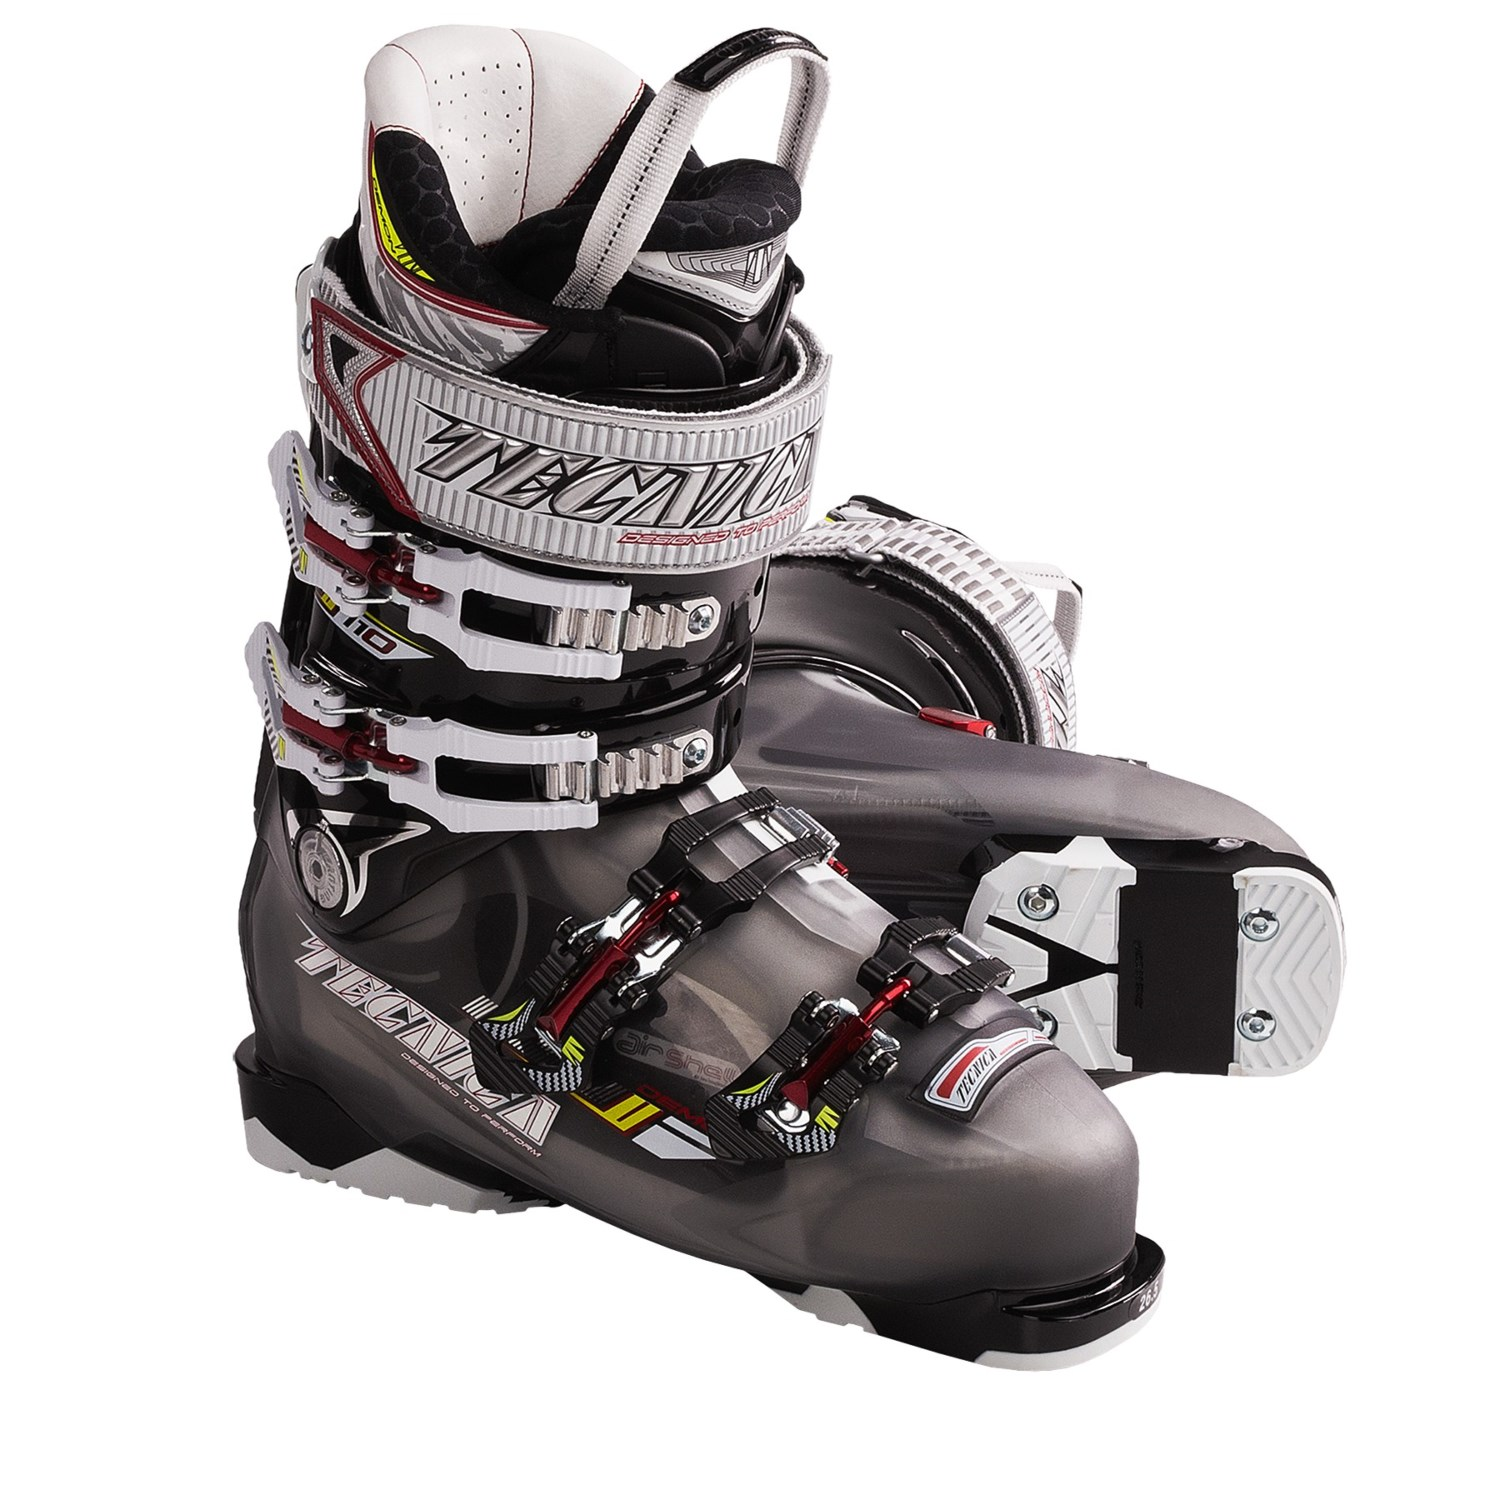 Buying ski boots in Whistler: Whistler Forum - TripAdvisor